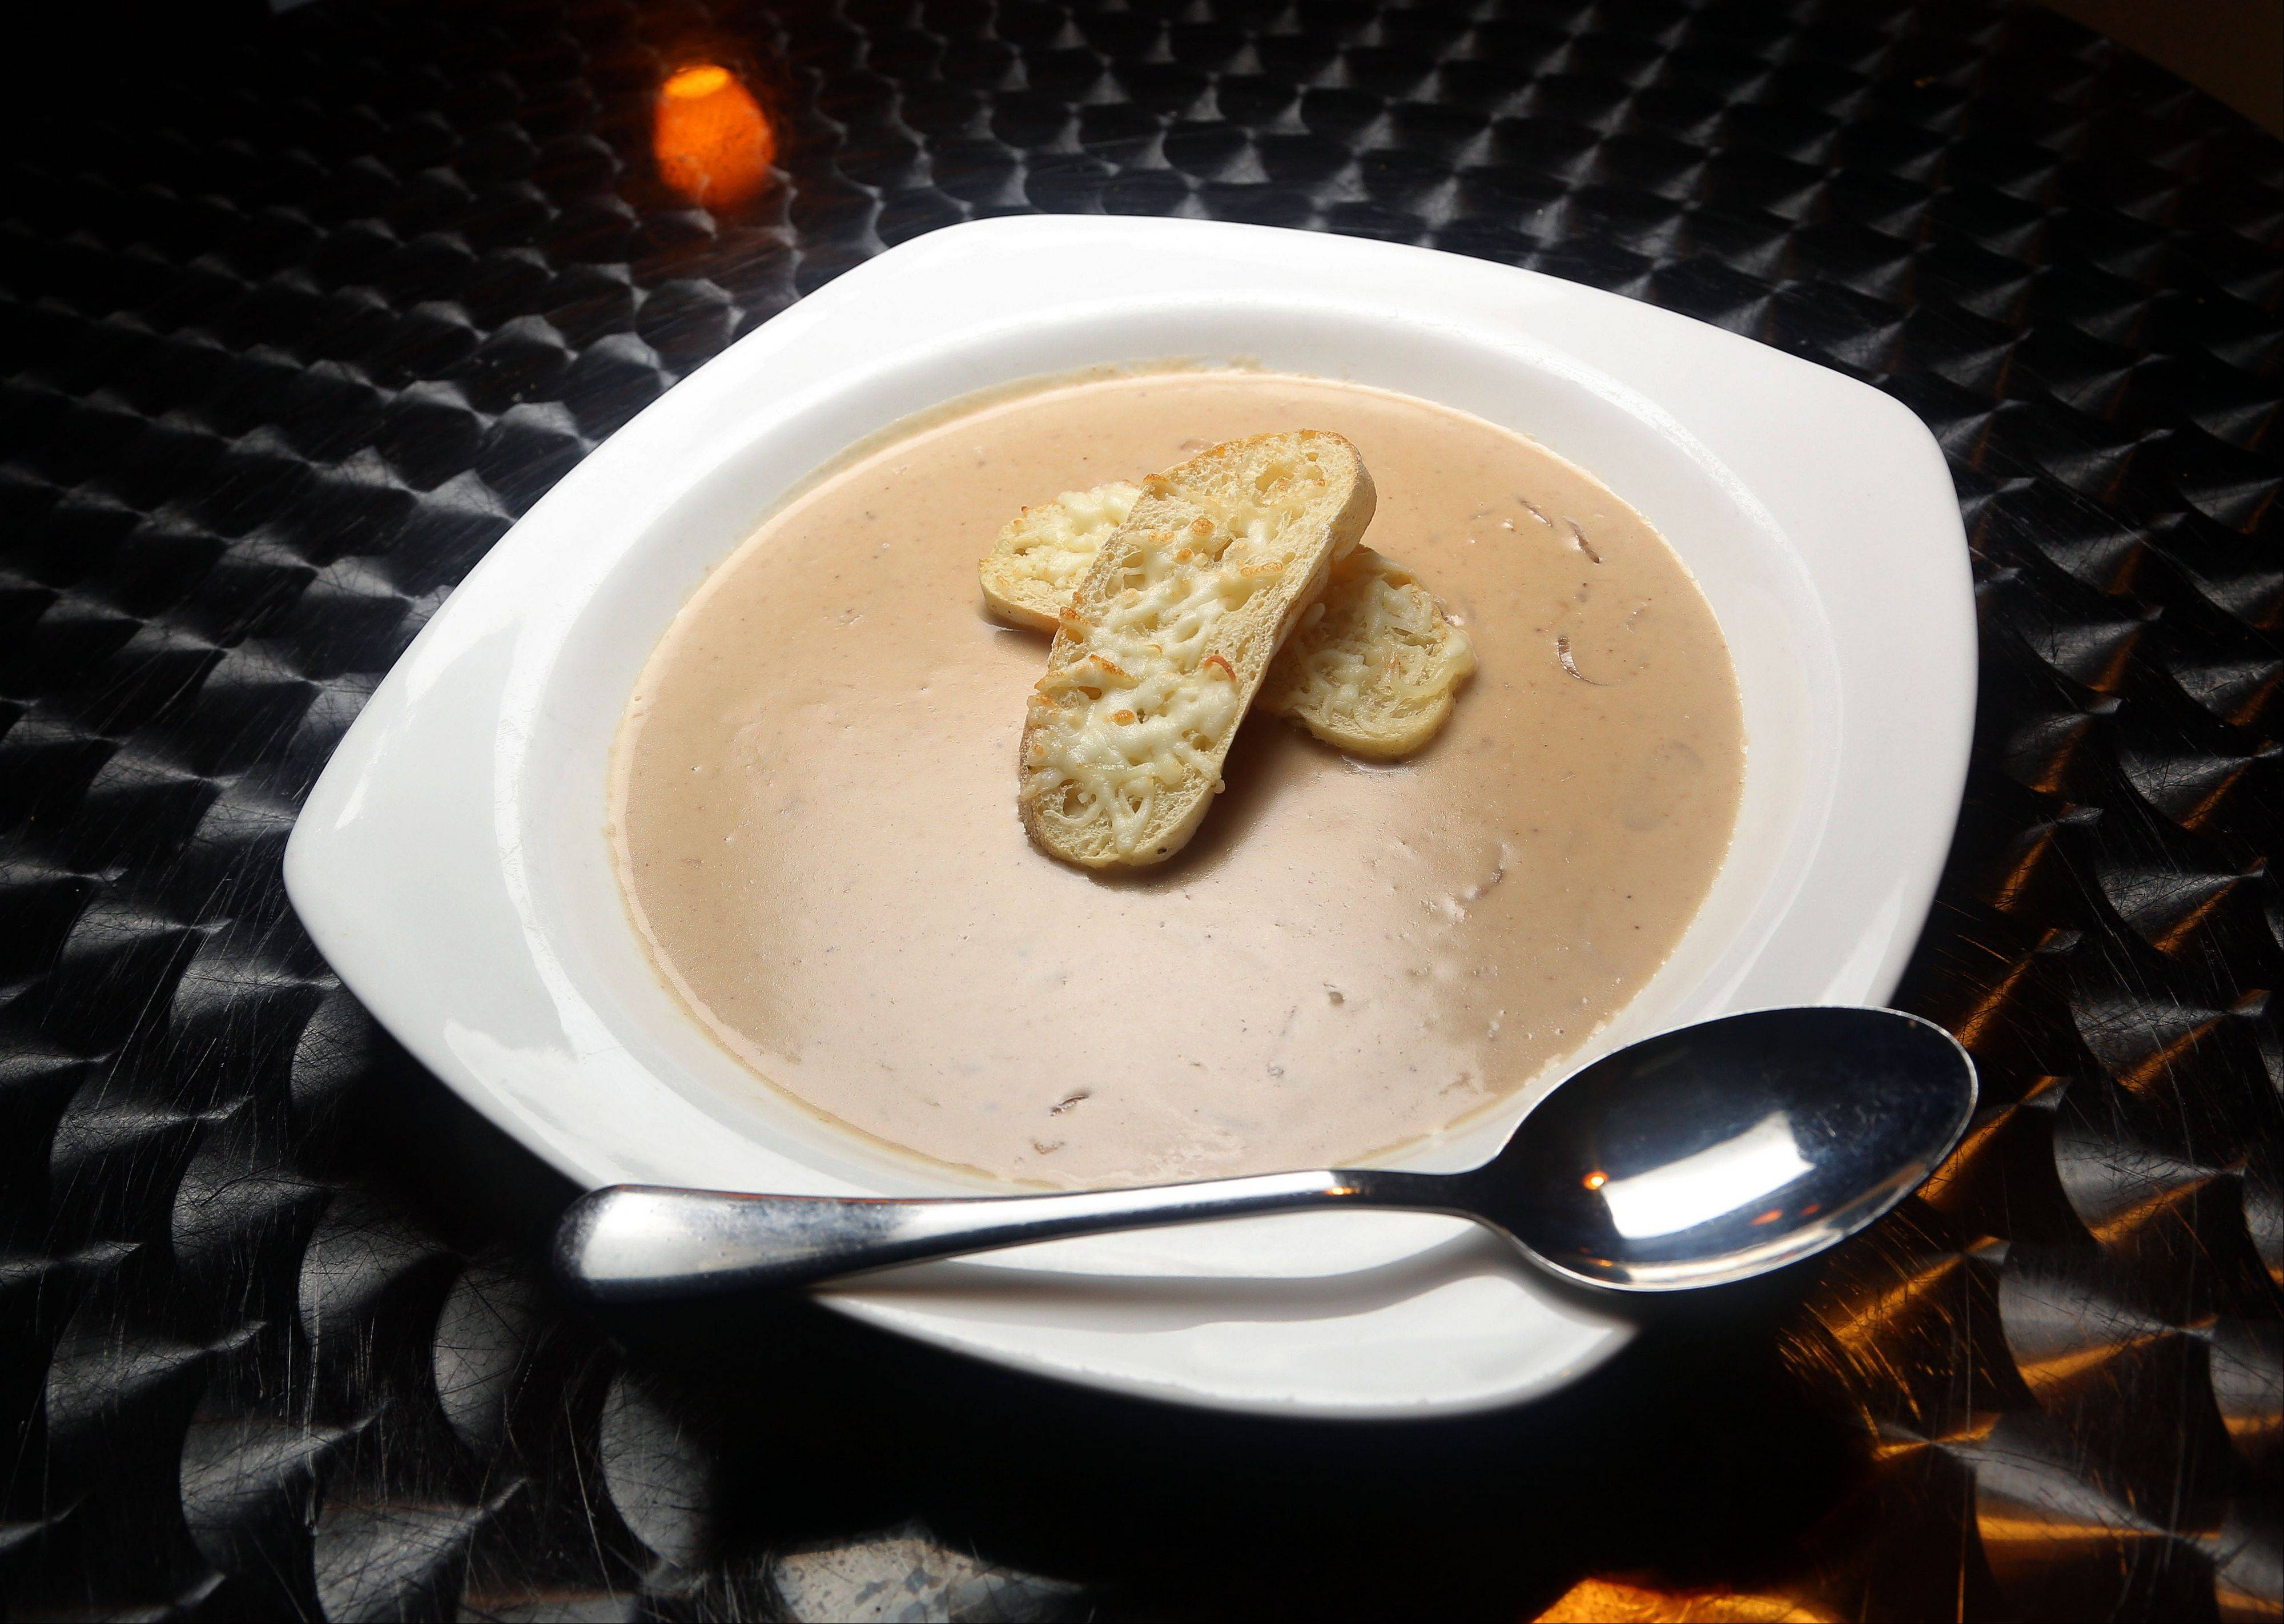 French onion soup gets a creamy update at Spice Restaurant and Lounge in Gurnee.